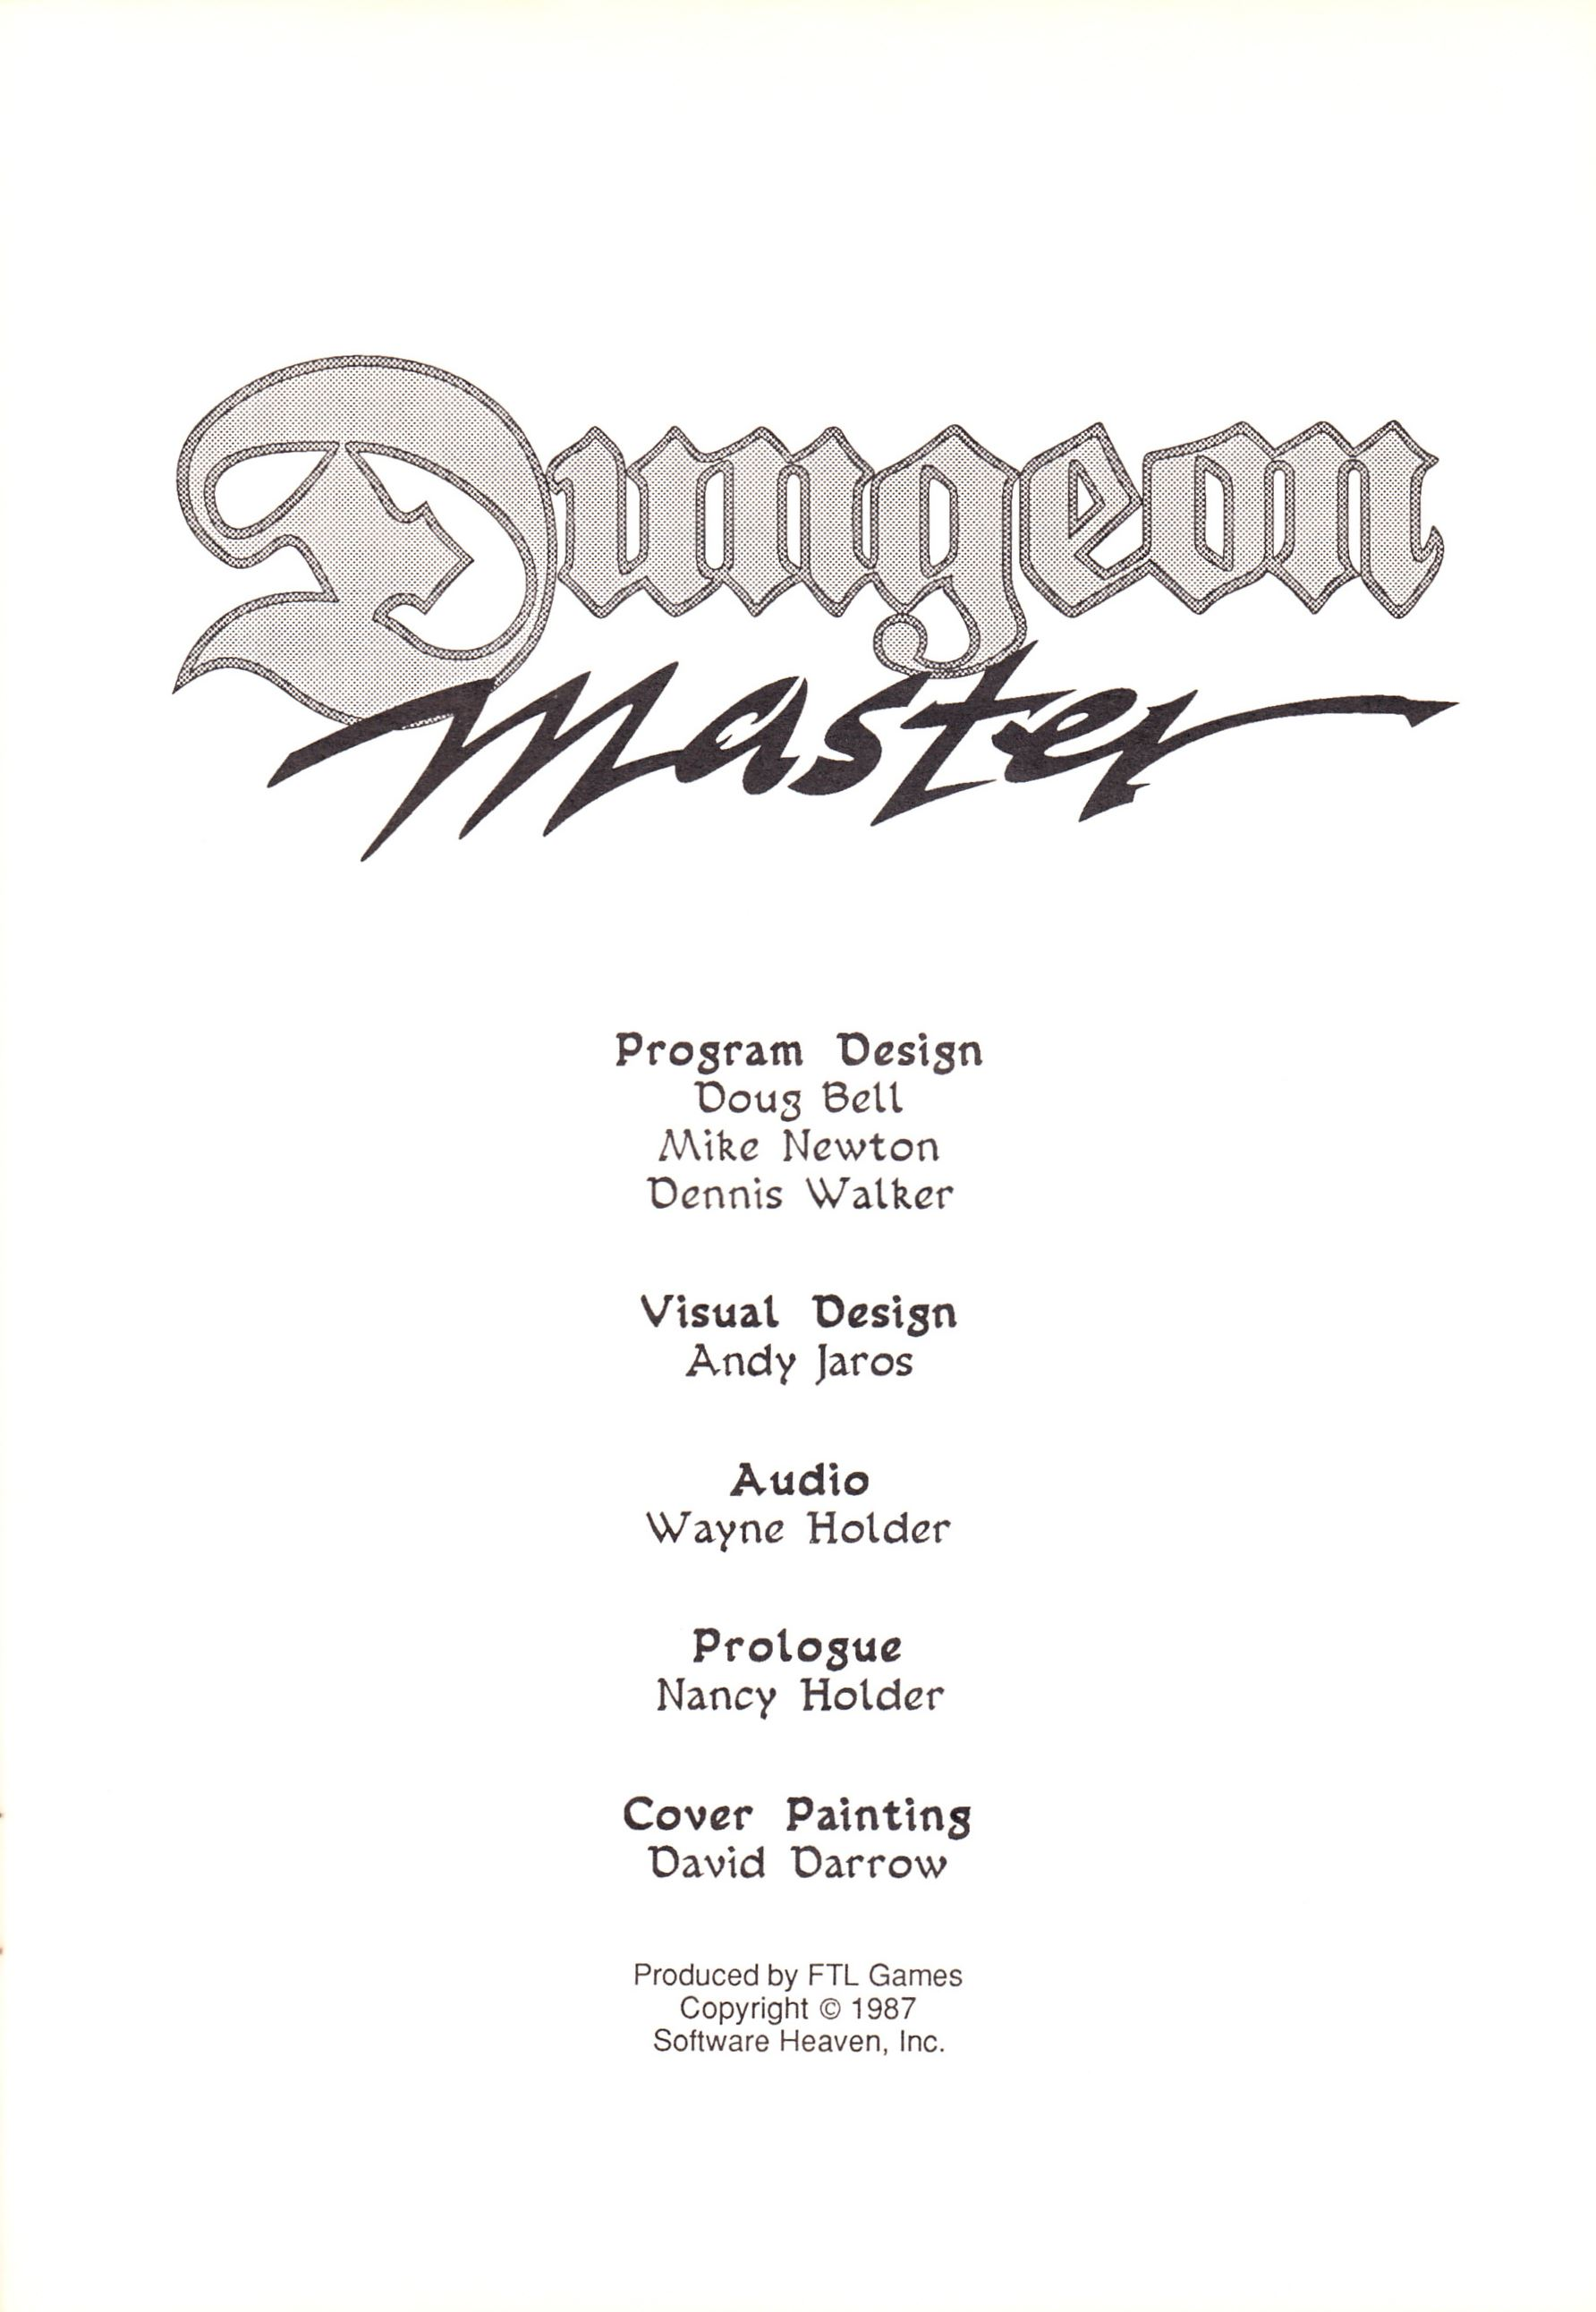 Dungeon Master for Atari ST | Dungeon Master Encyclopaedia